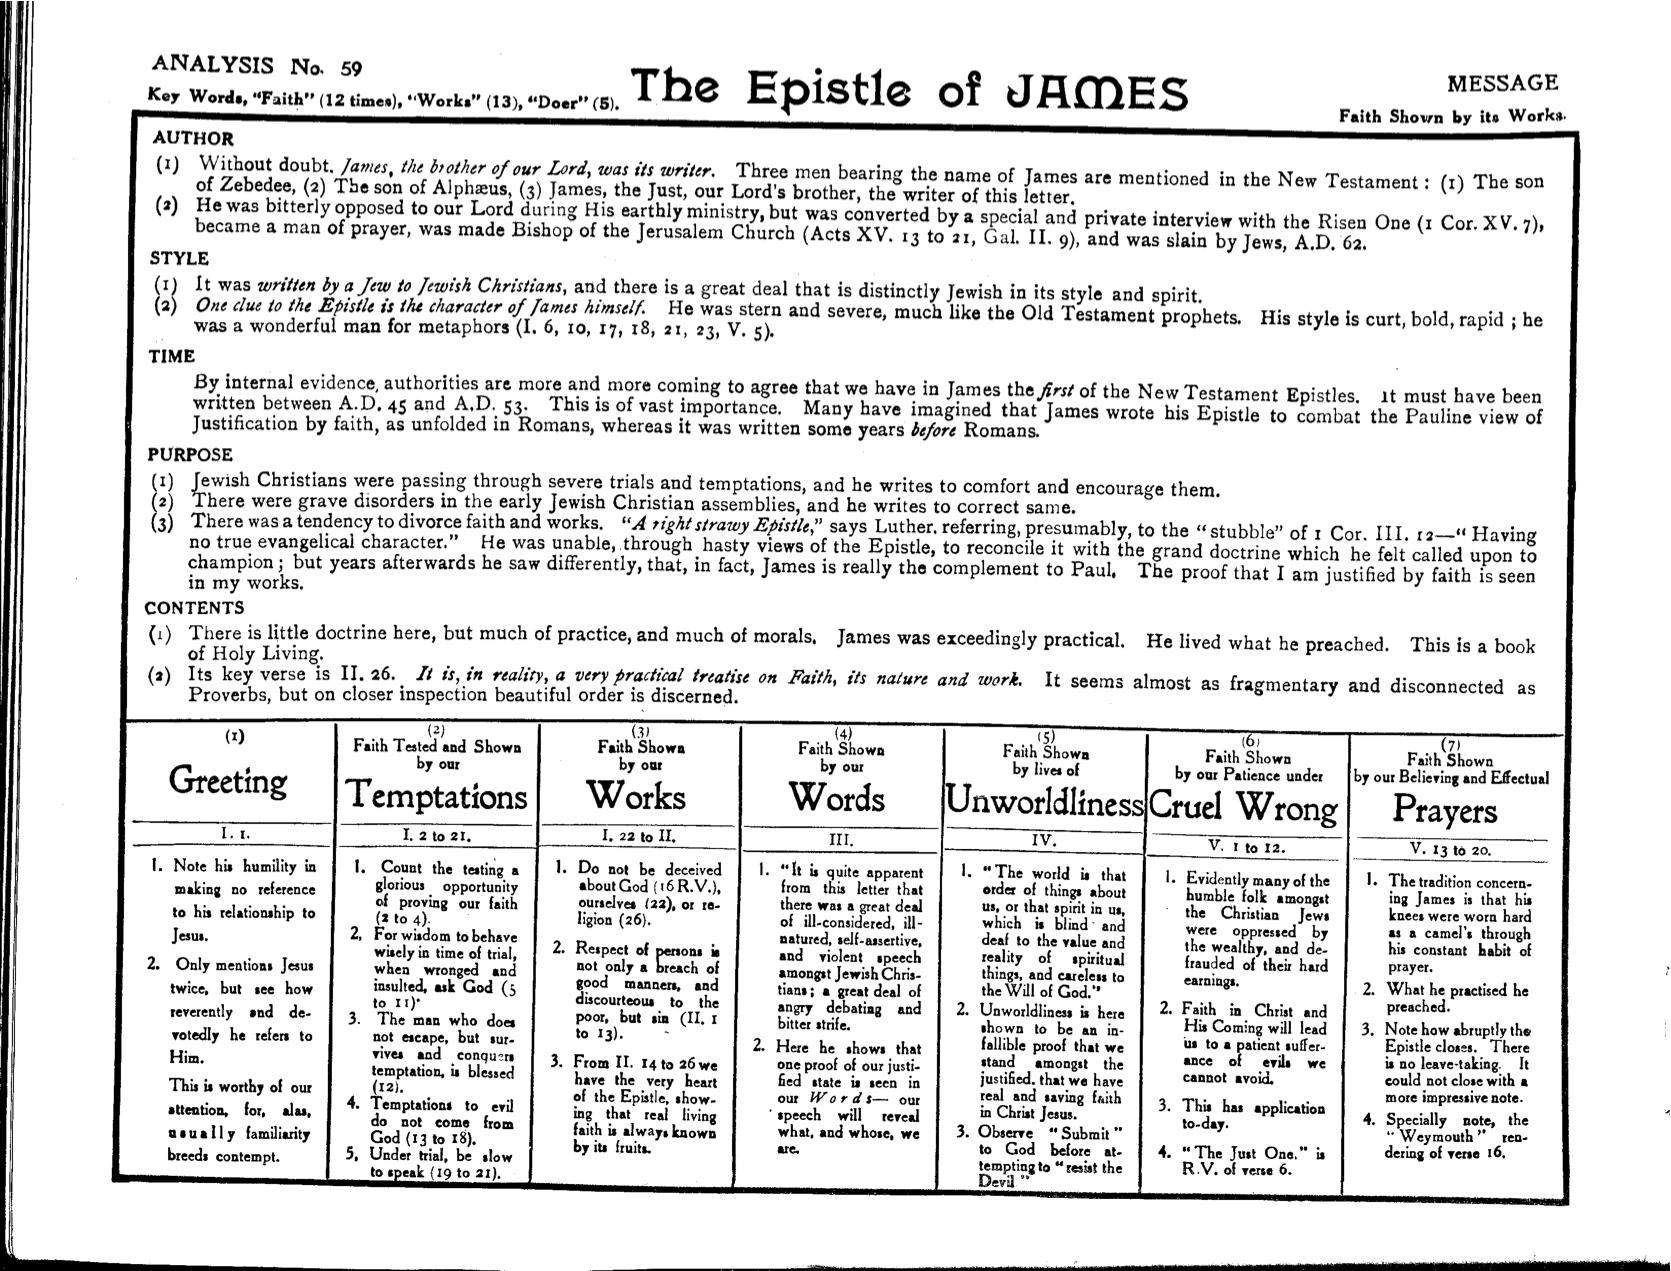 The Epistle of James as it appears in The Outlined Bible